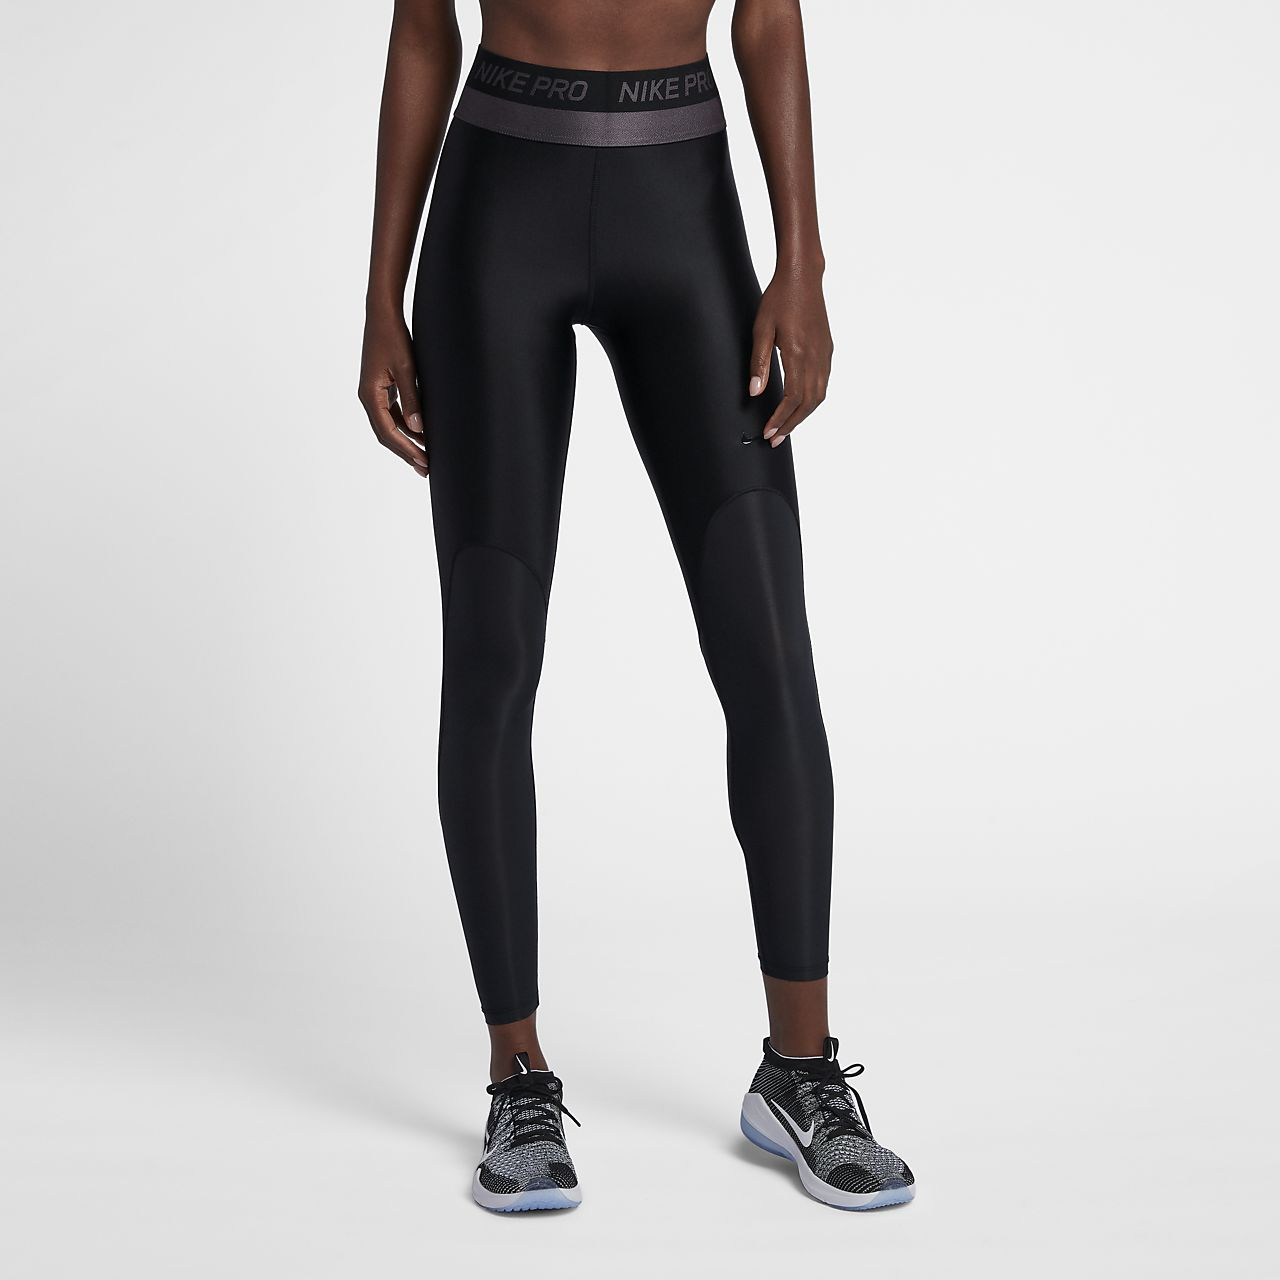 Nike Pro HyperCool Women's Mid-Rise Training Tights